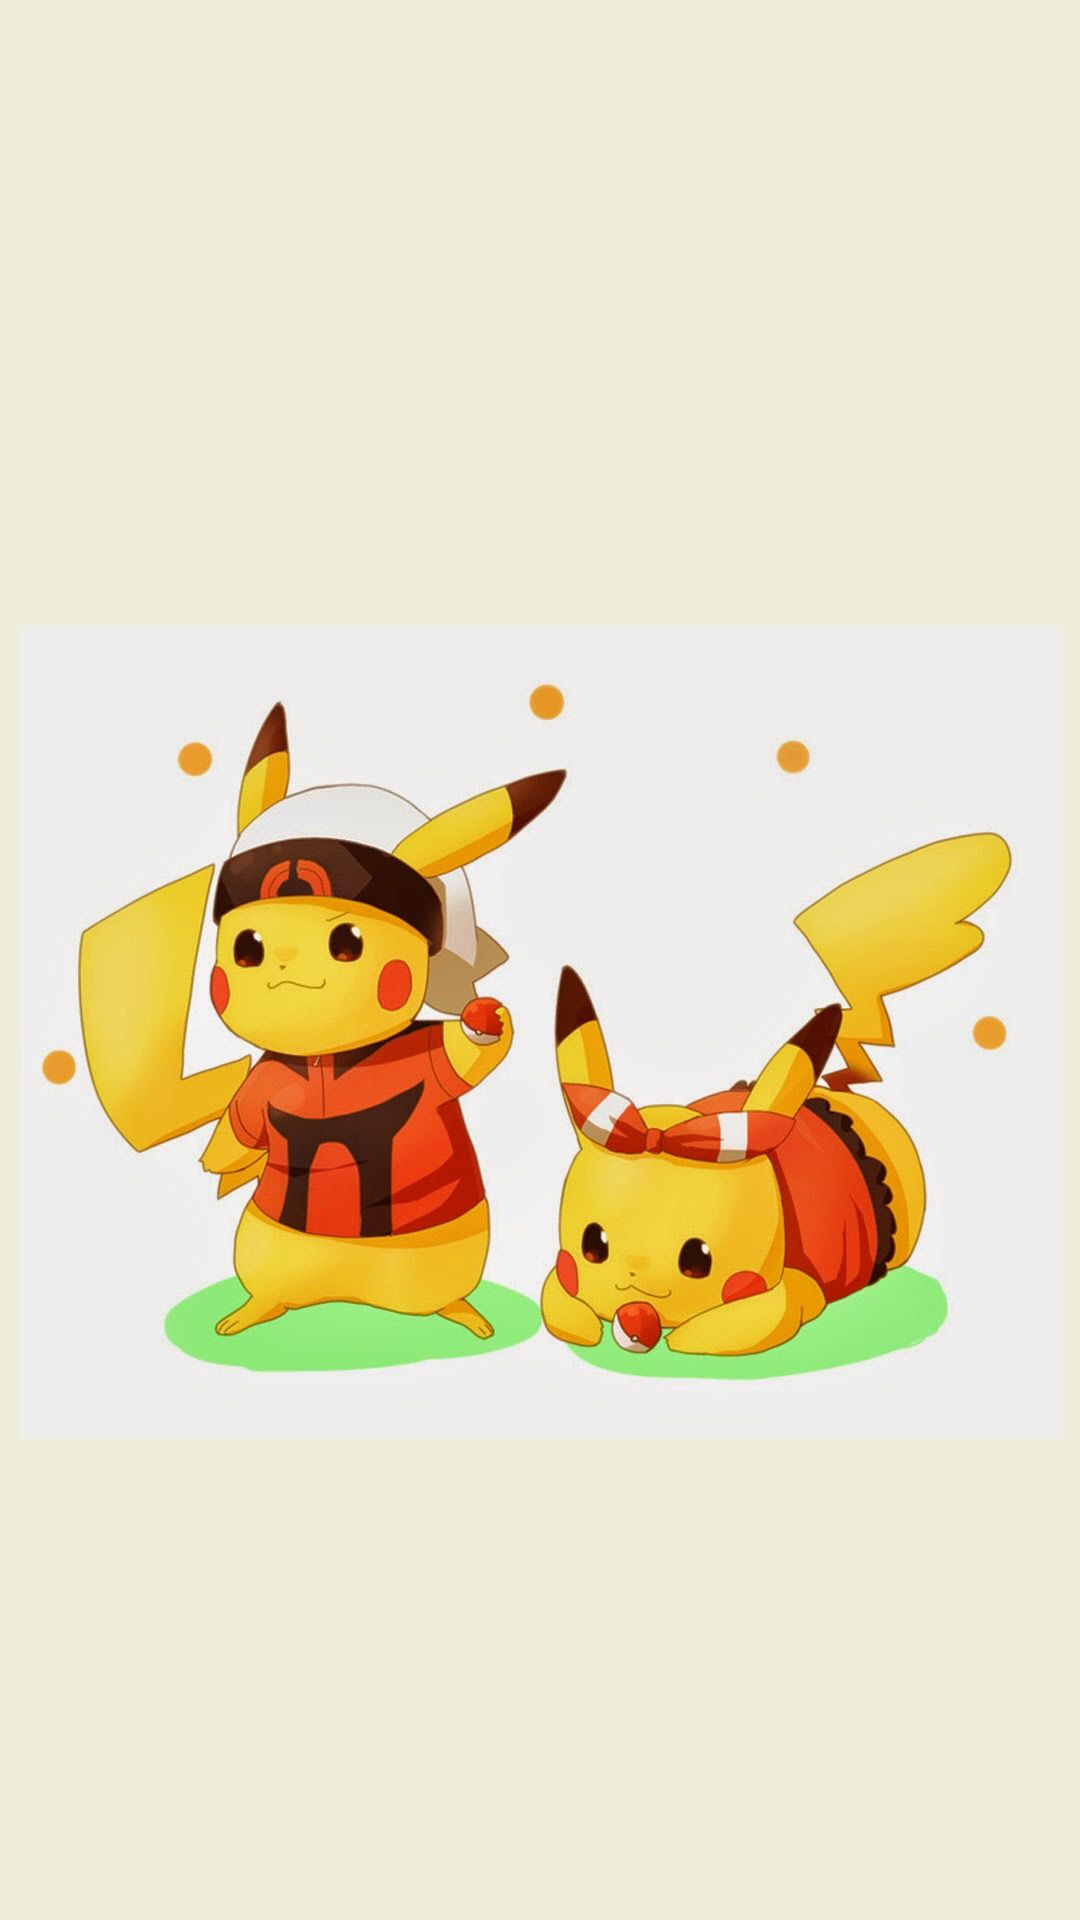 Tap Image For More Iphone 6 Plus Pikachu Wallpapers Pikachu Mobile9 Cute Wallpapers For Iphone 5 5s Iphone 6 Ip Cute Pikachu Pikachu Wallpaper Pikachu